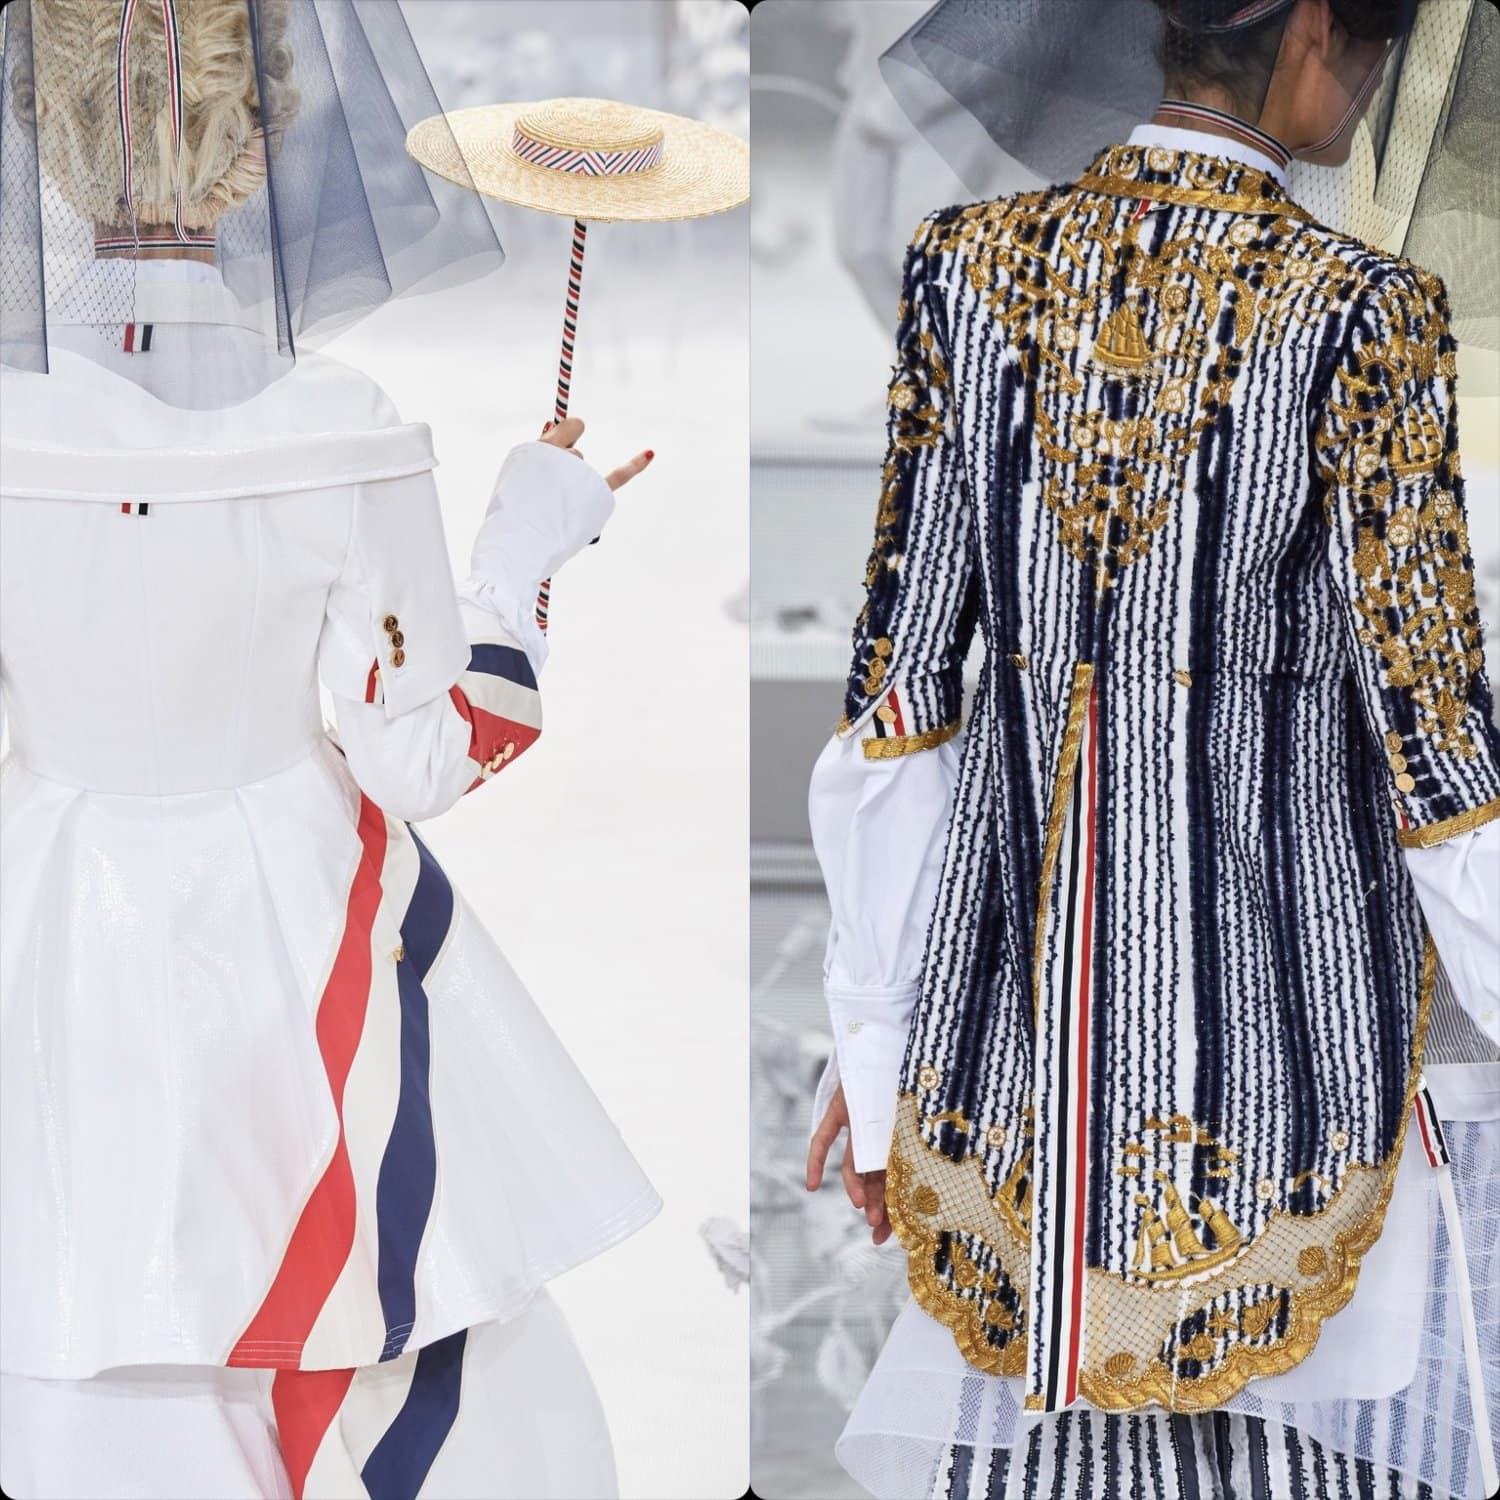 Thom Browne Spring Summer 2020 Paris Fashion Week. RUNWAY MAGAZINE ® Collections. RUNWAY NOW / RUNWAY NEW